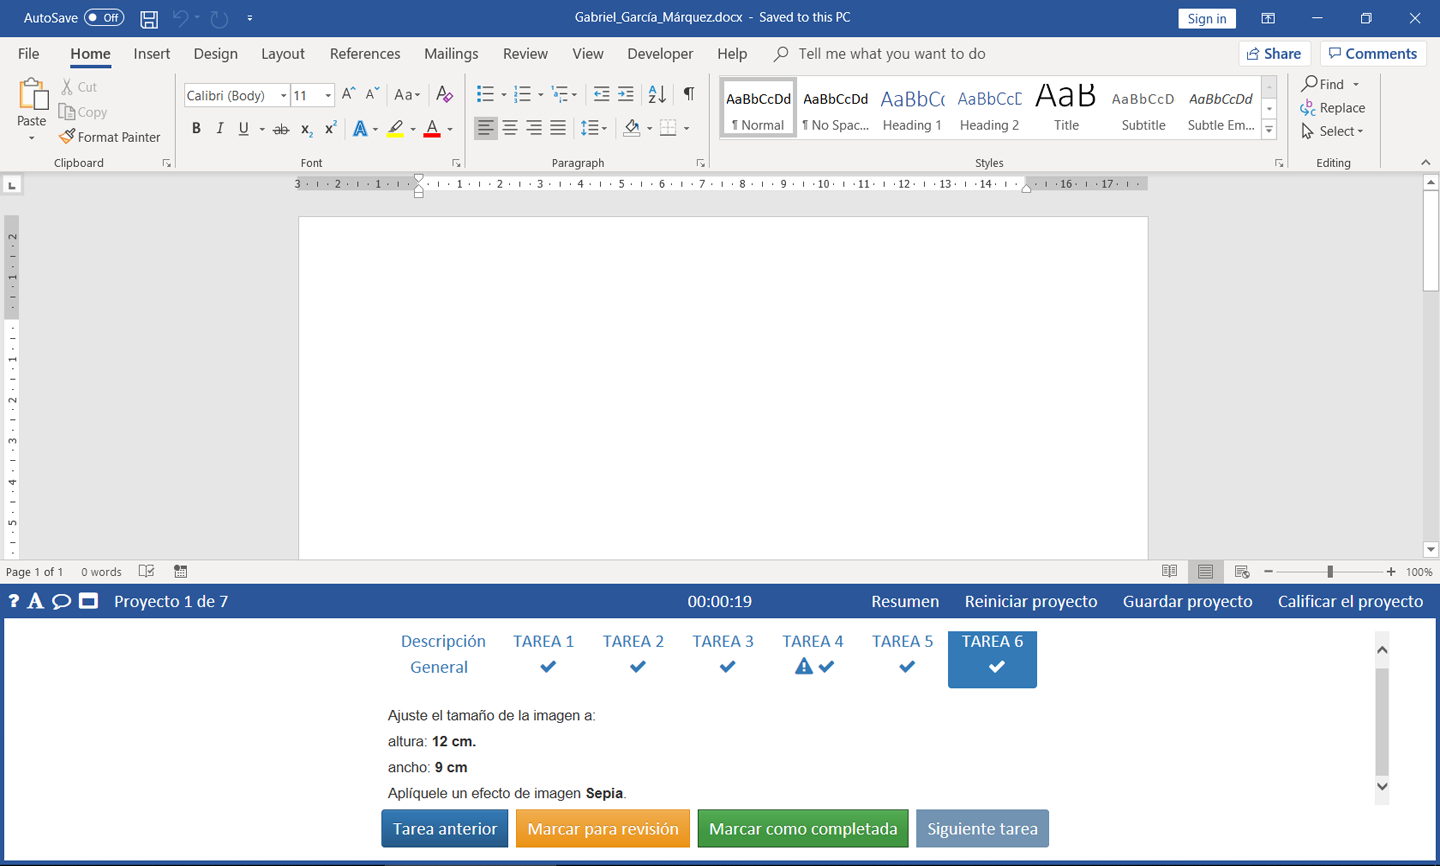 MO-100 Word Associate-Office 365 & Office 2019 - Spanish version